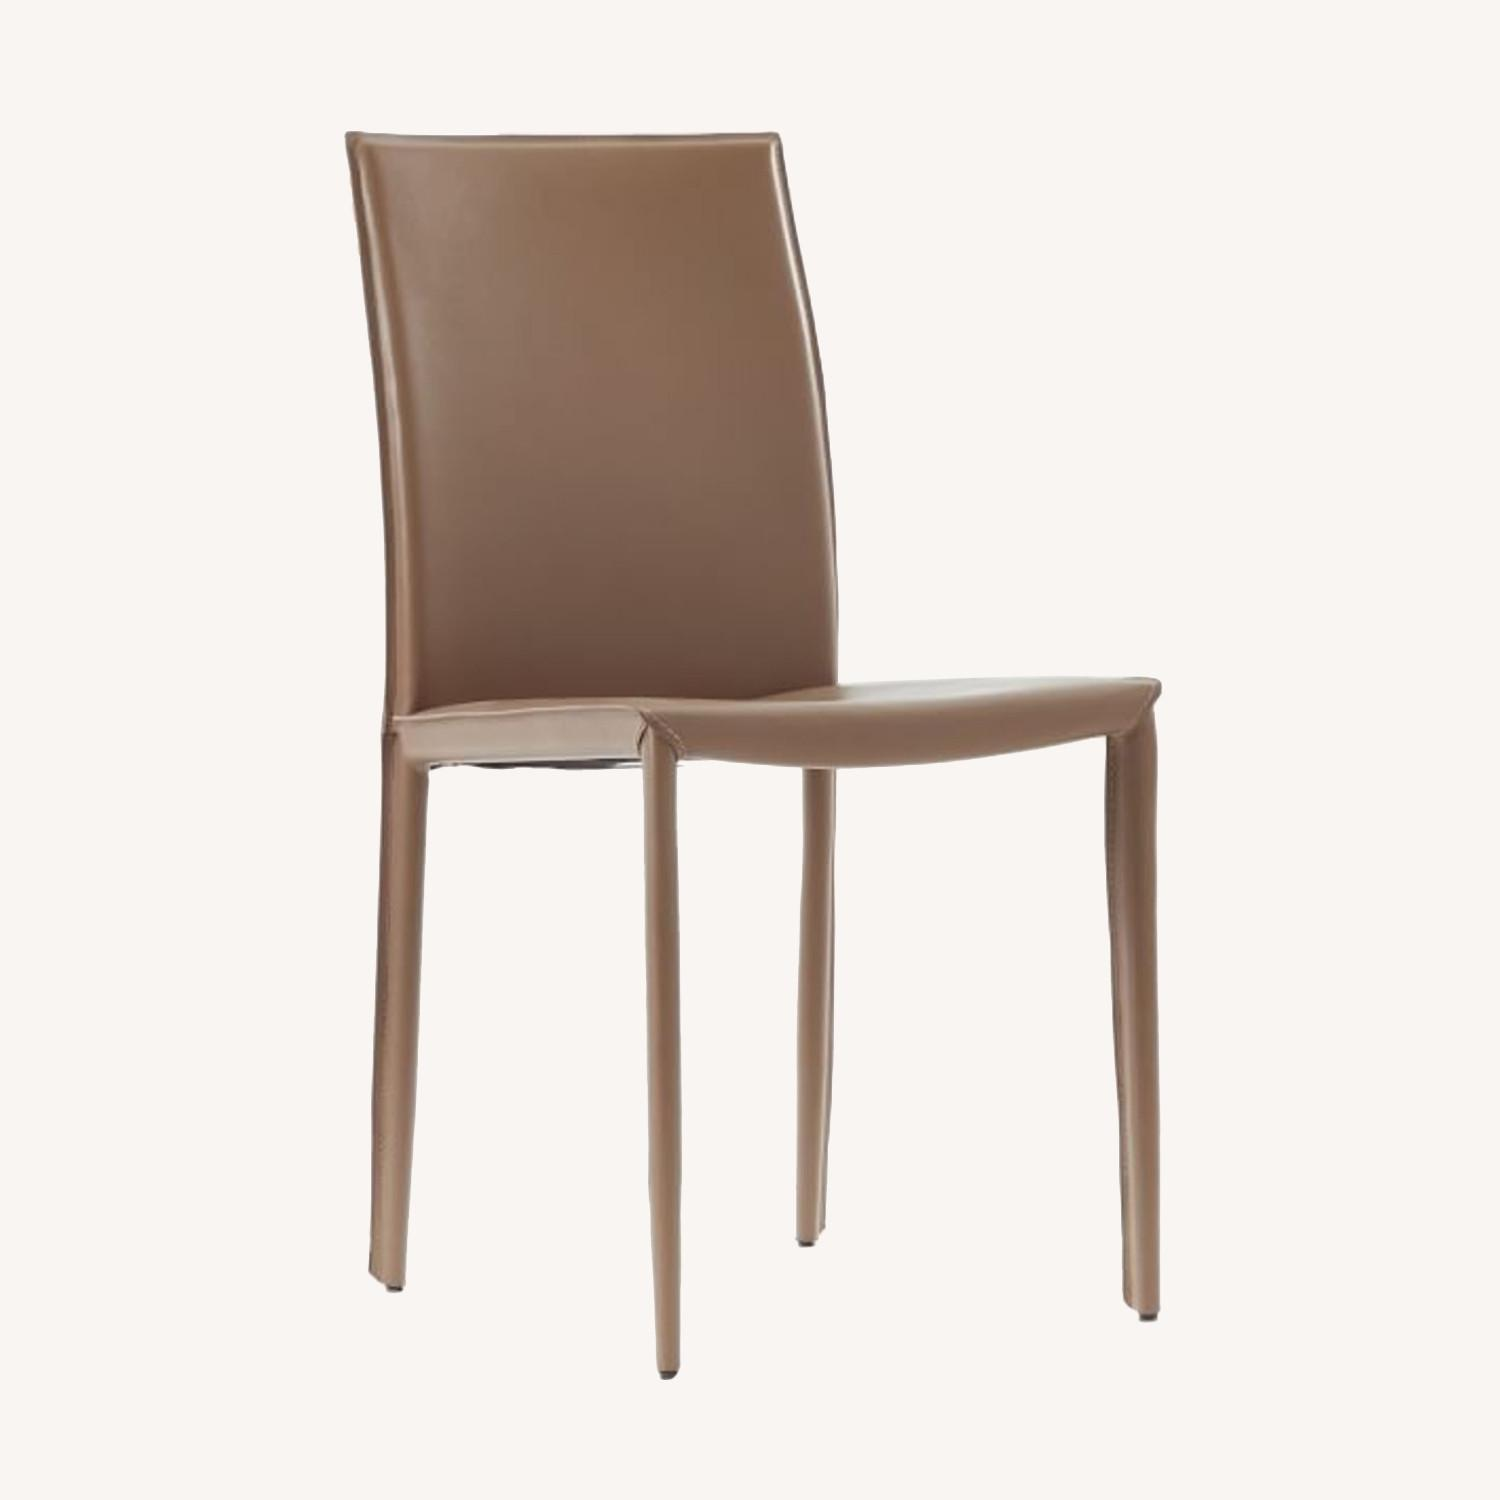 West Elm Lex Dining Chair - image-0